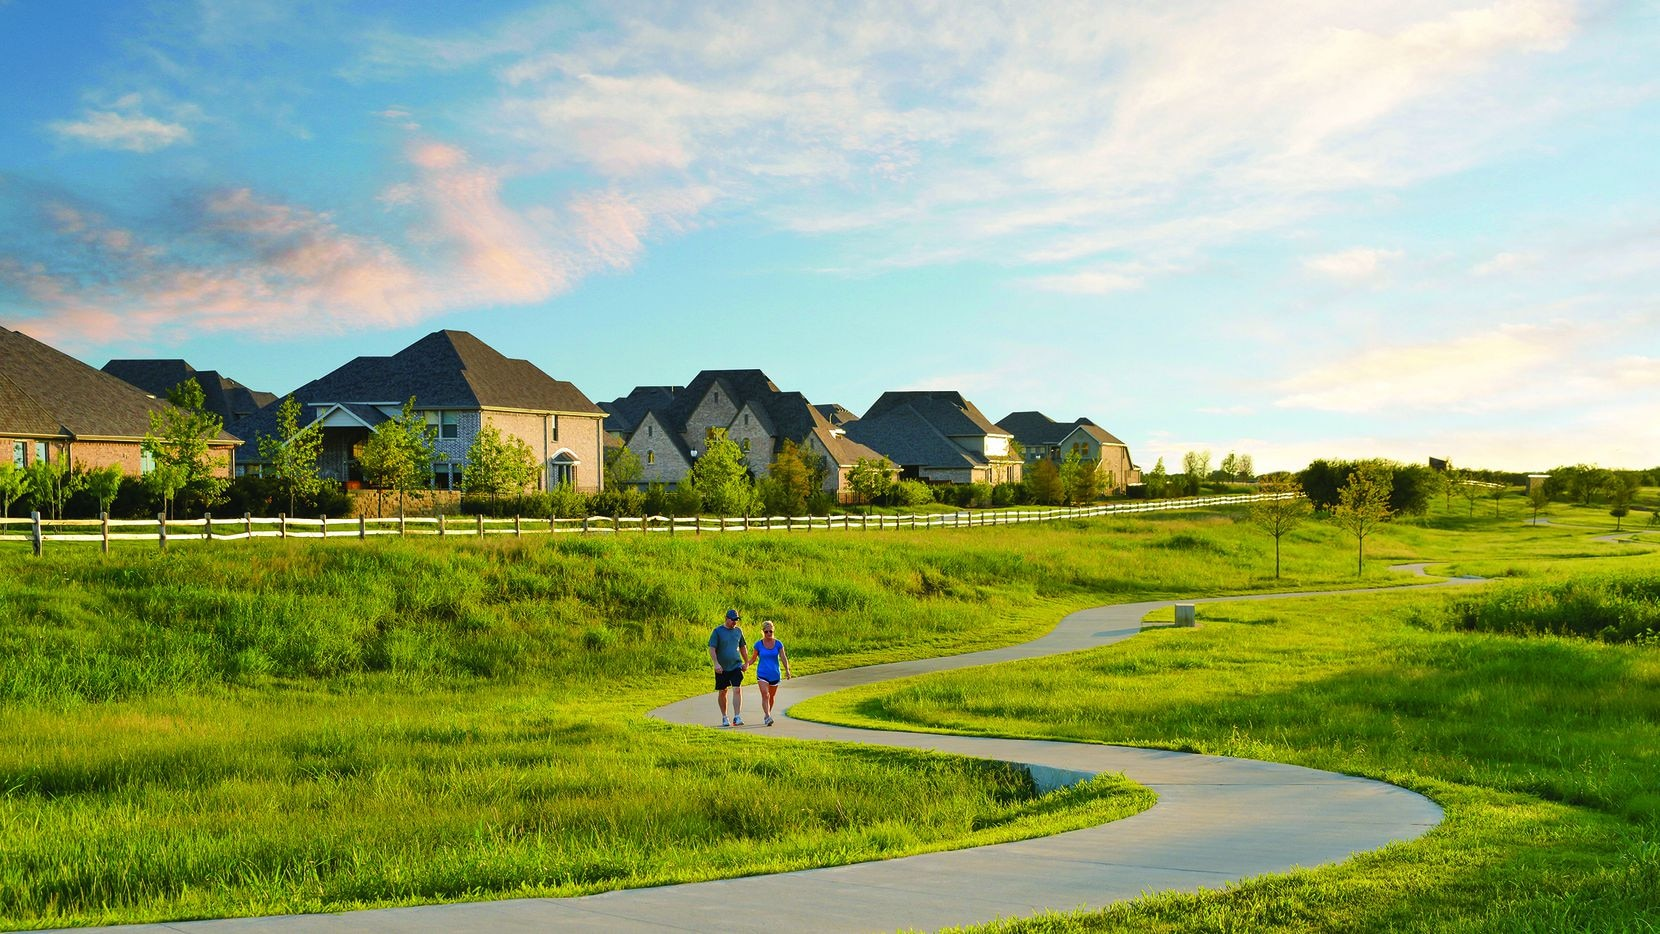 Windsong Ranch in Prosper offers over 600 acres of green space and homes priced from the low $300s to over $1 million.